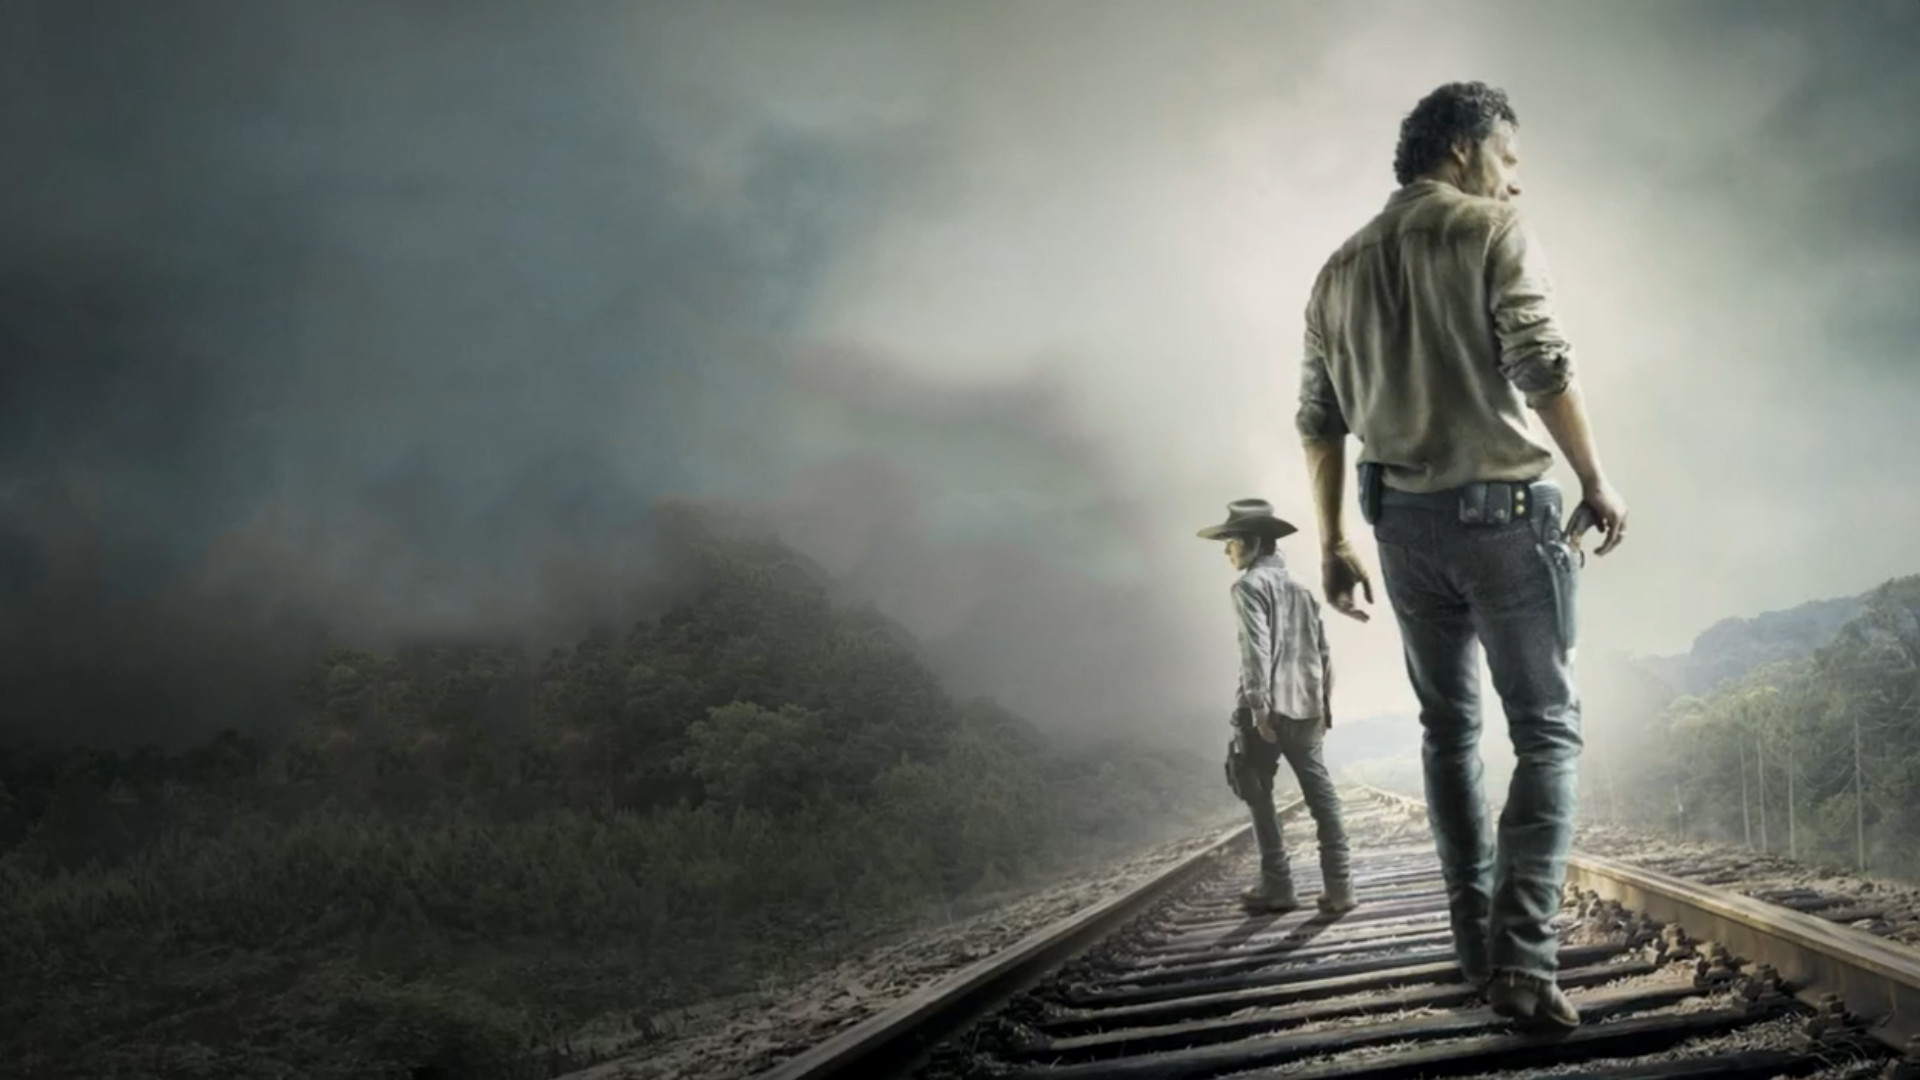 Movies Wallpaper: The Walking Dead Wallpaper Season 4 Wallpapers